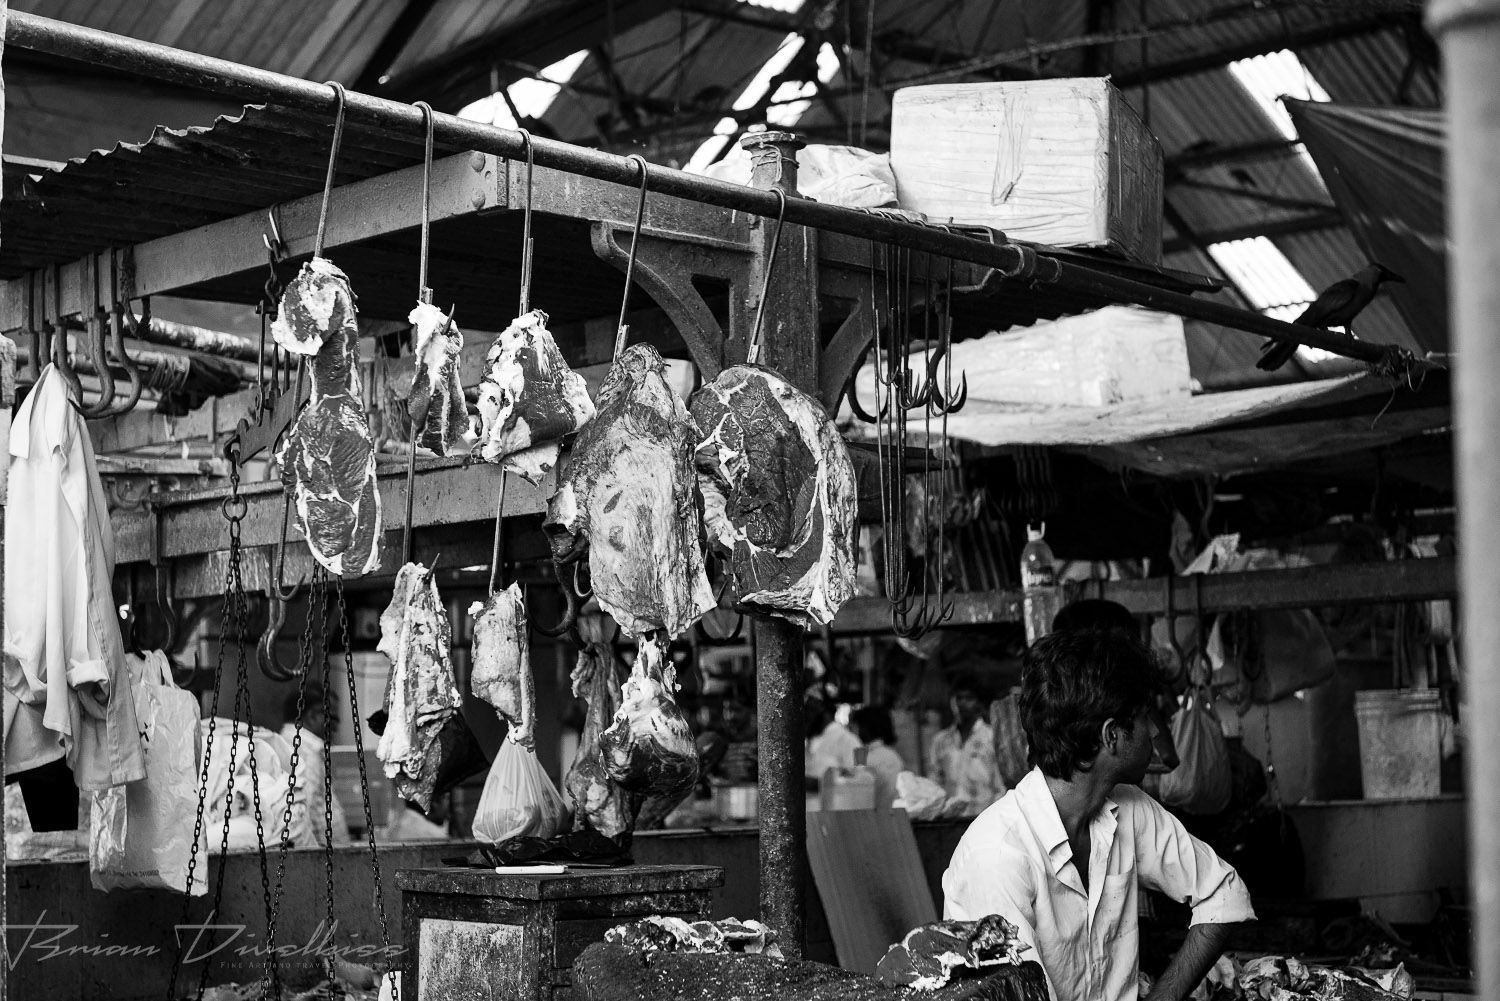 Meat hanging over butcher shop at Crawford Market in Mumbai, India in black and white.